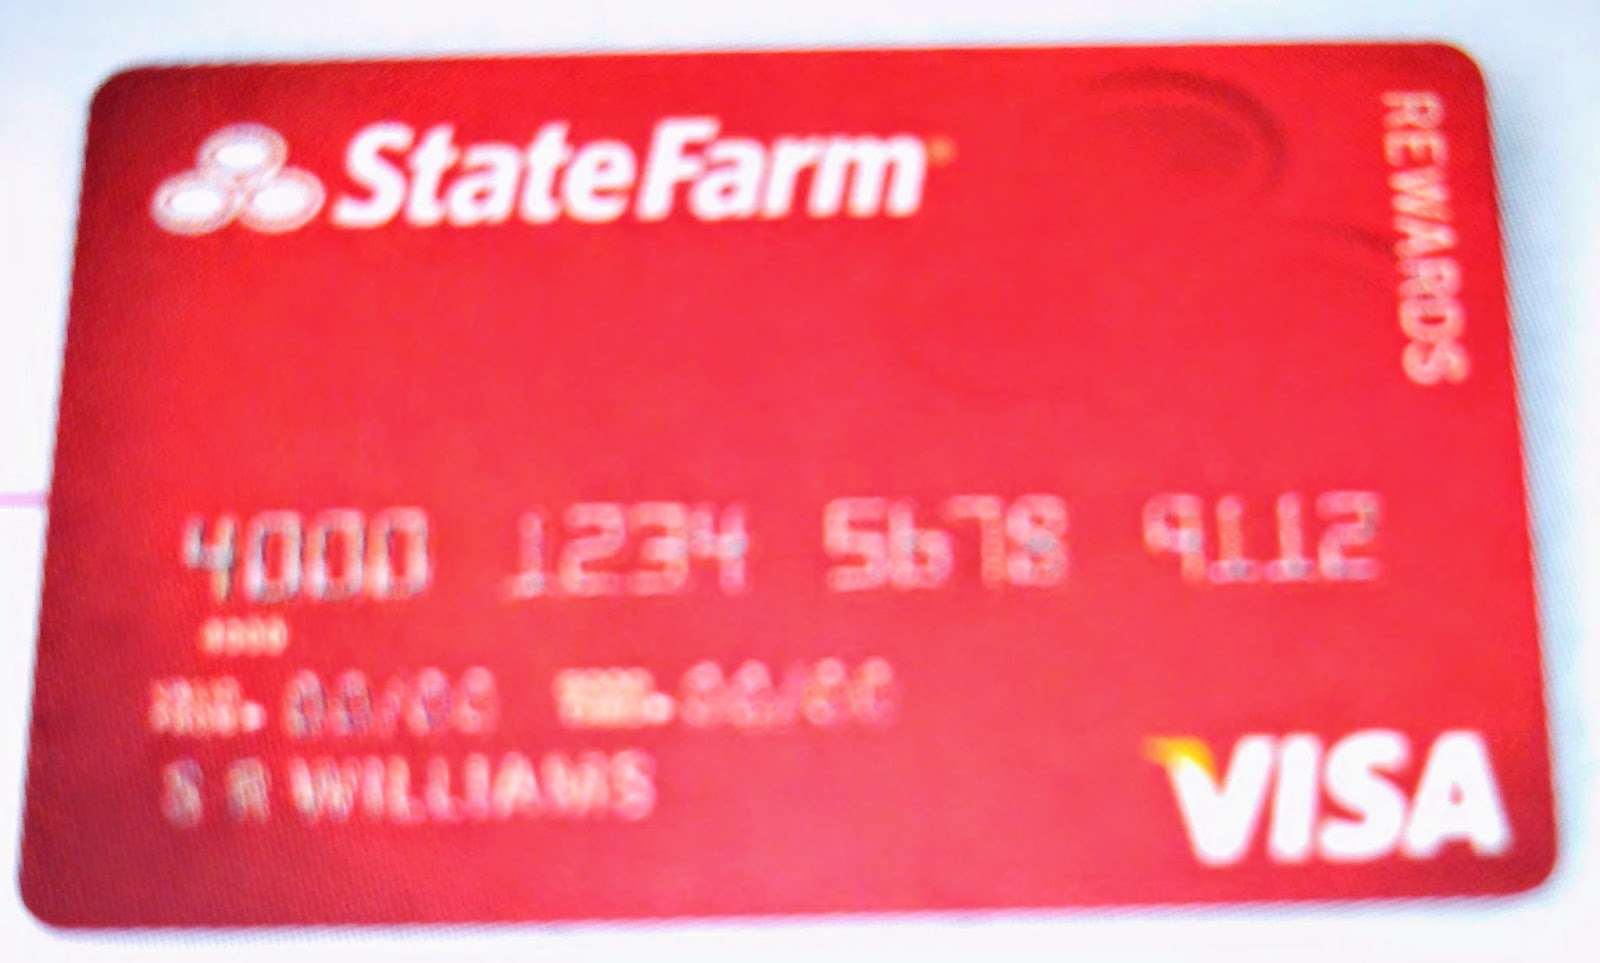 State Farm Credit Card- It's a Good Offer